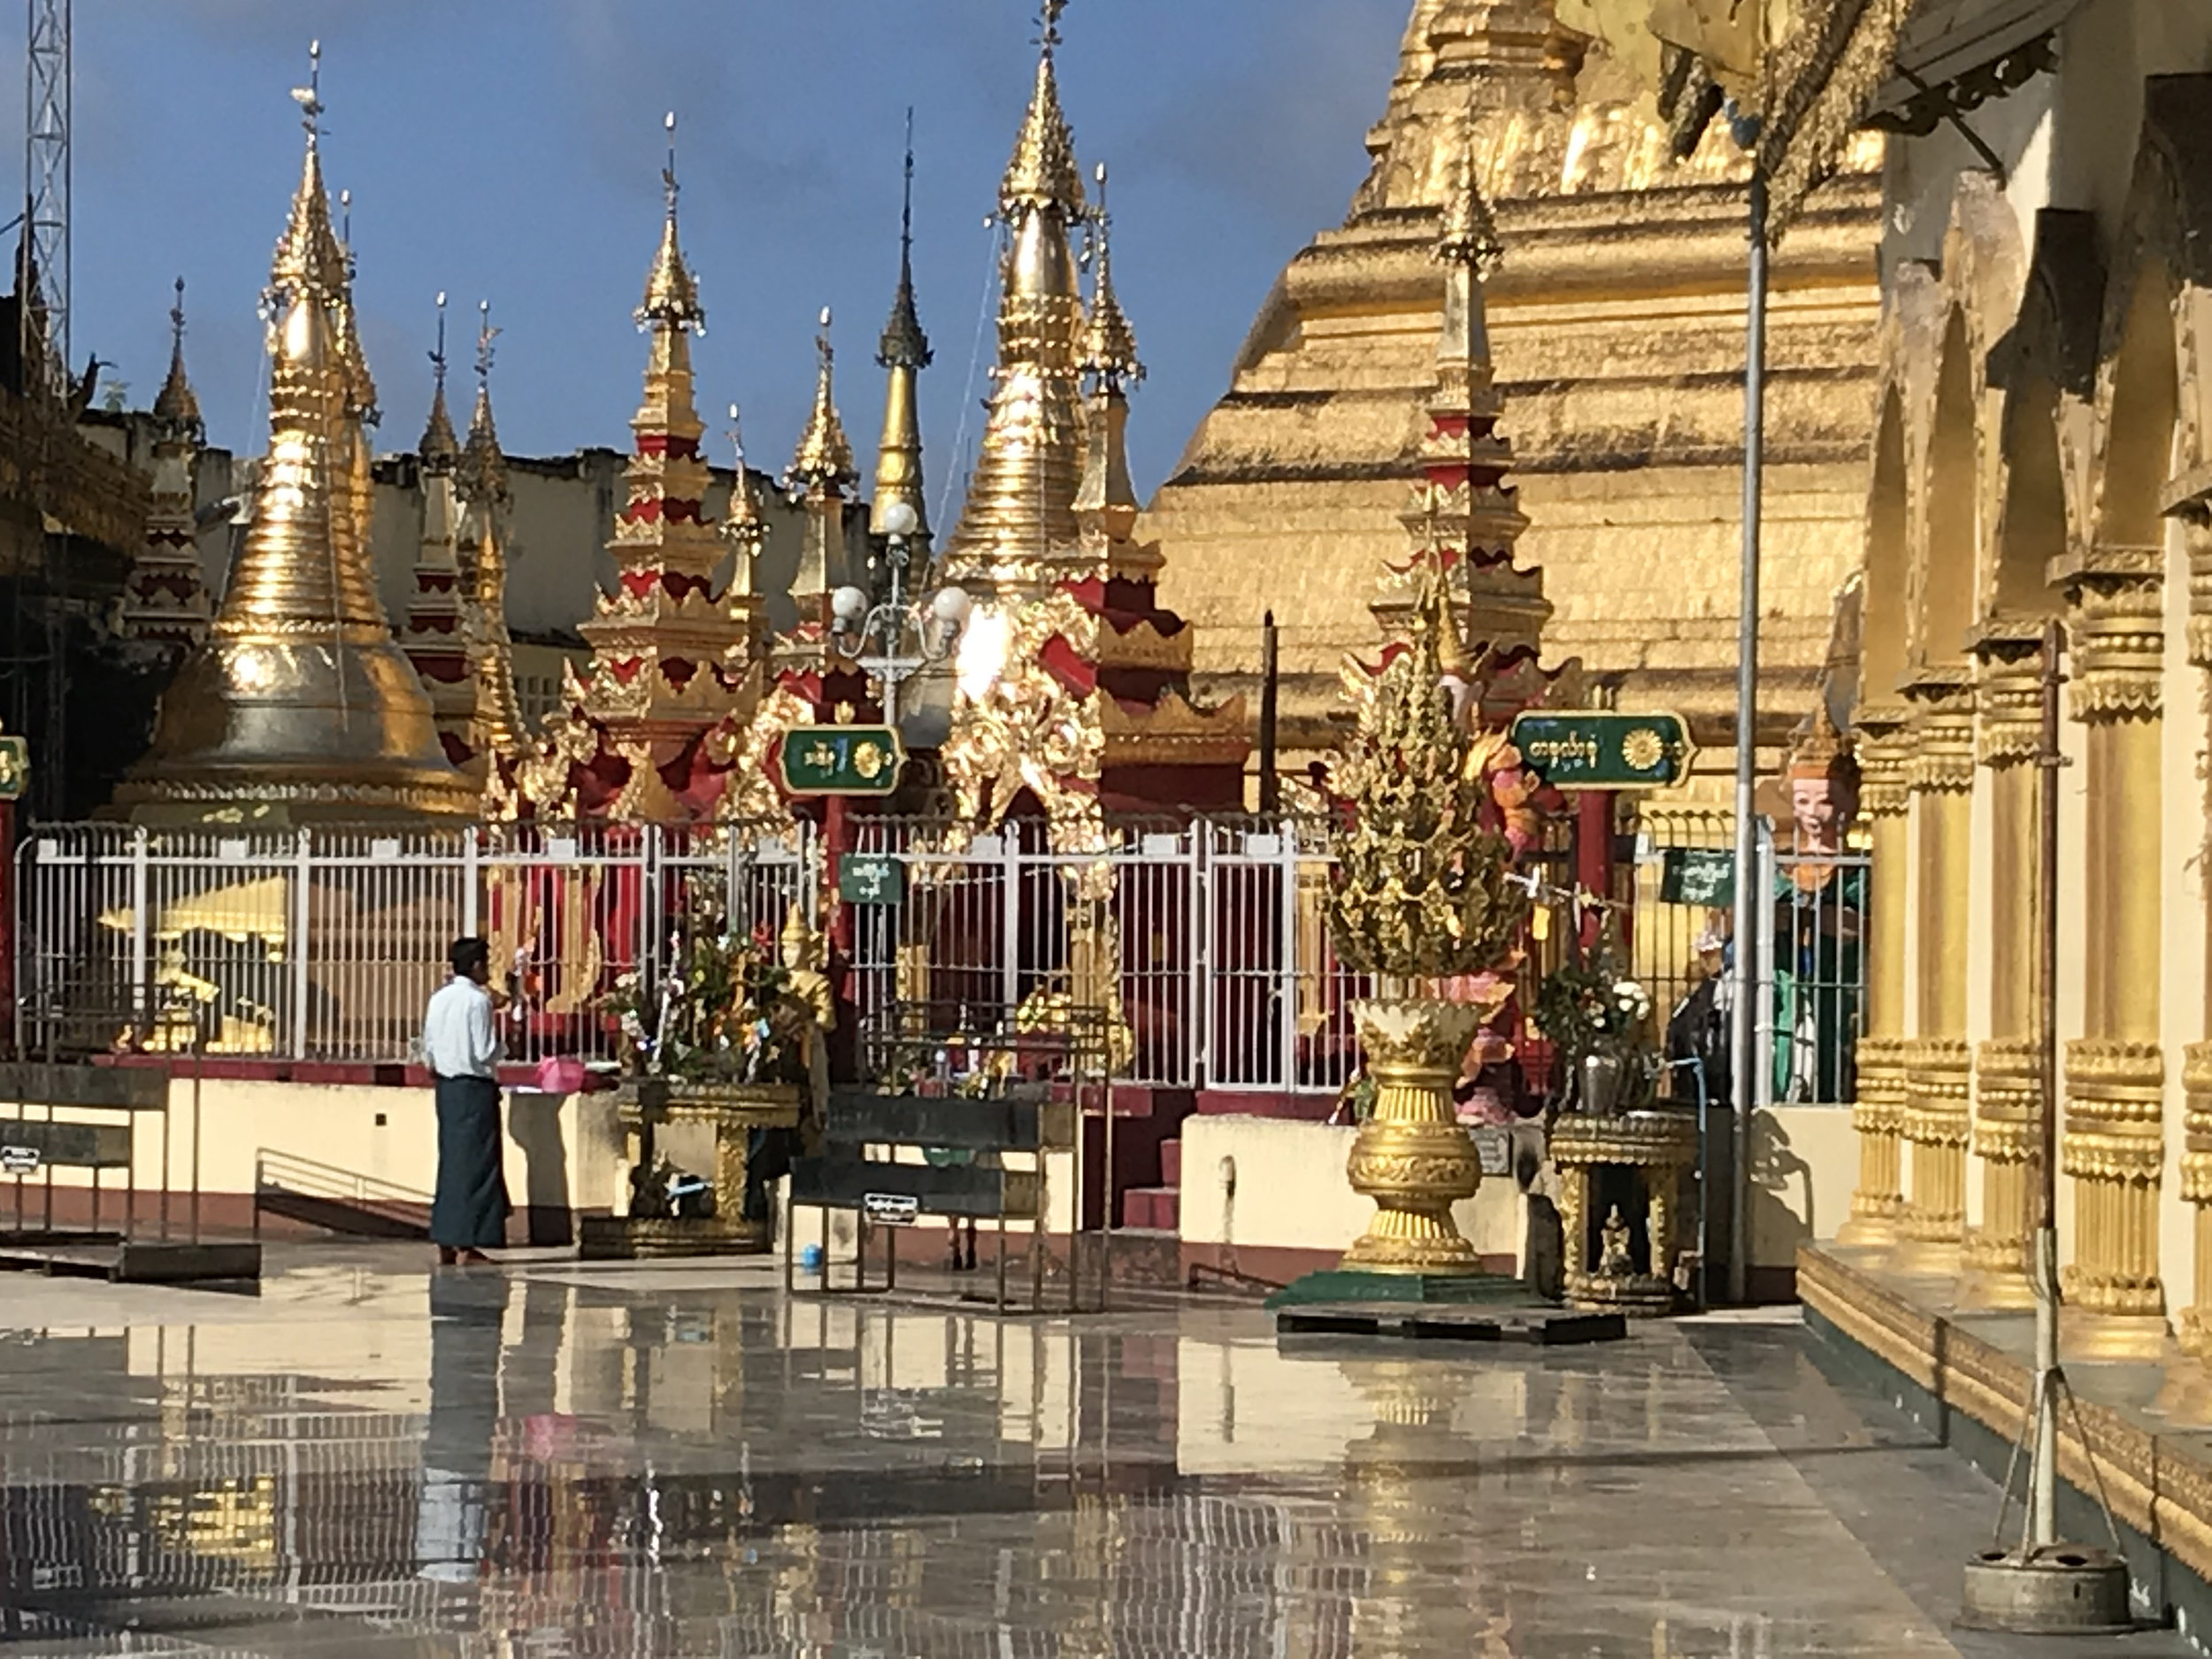 Just another beautiful pagoda - this one in Pathein